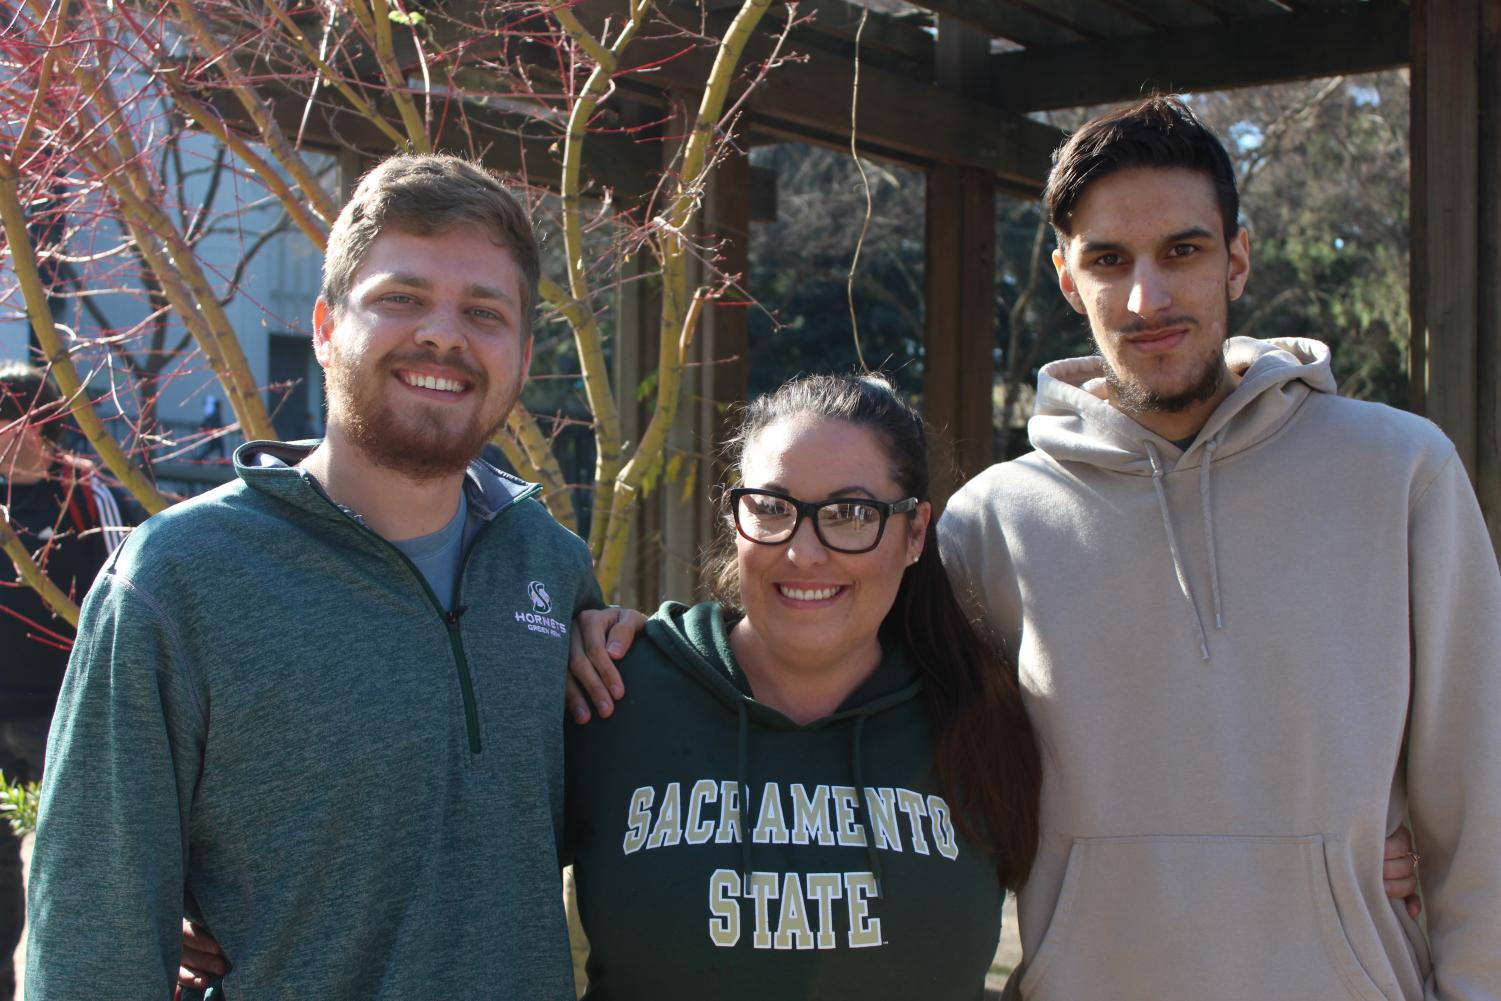 From left to right, Nick Palsgaard, Donna Walters, and Paul Mello stand near the library quad near their booth during club rush. They, along with club members, work toward expanding eSports at Sac State by competing in gaming tournaments.